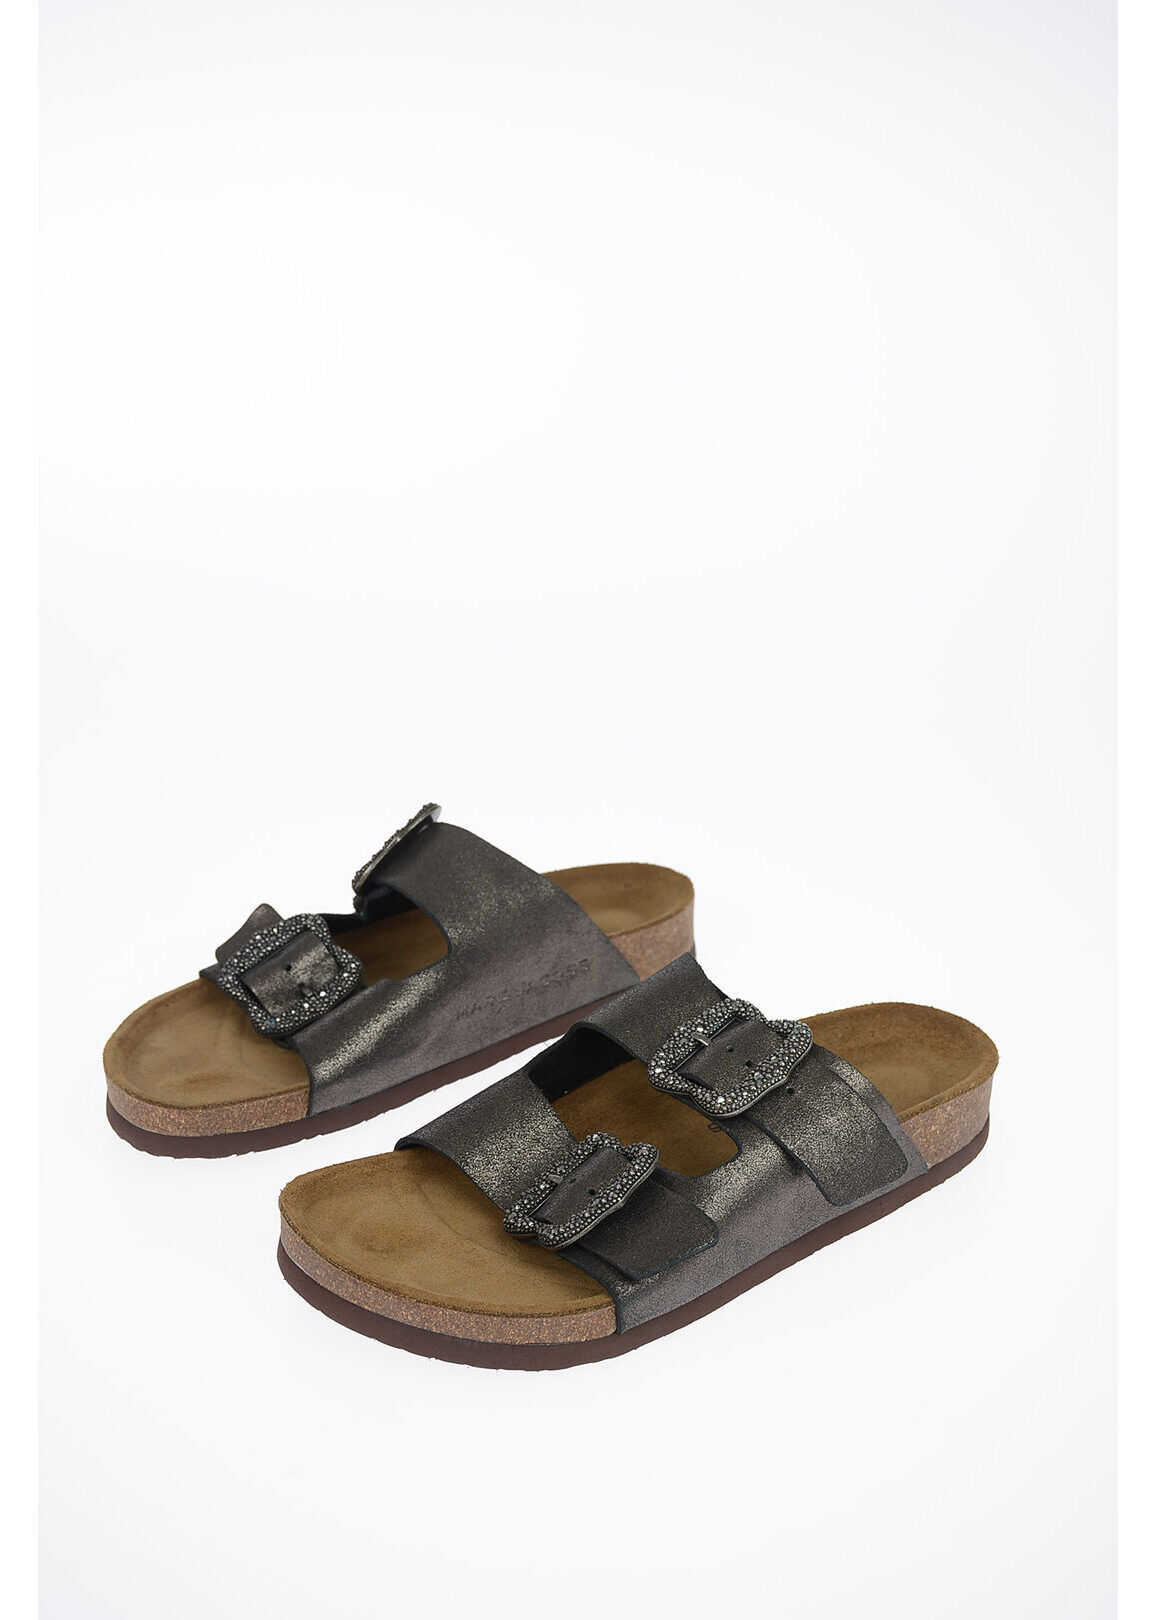 Marc Jacobs REDUX GRUNGE leather sandals GRAY